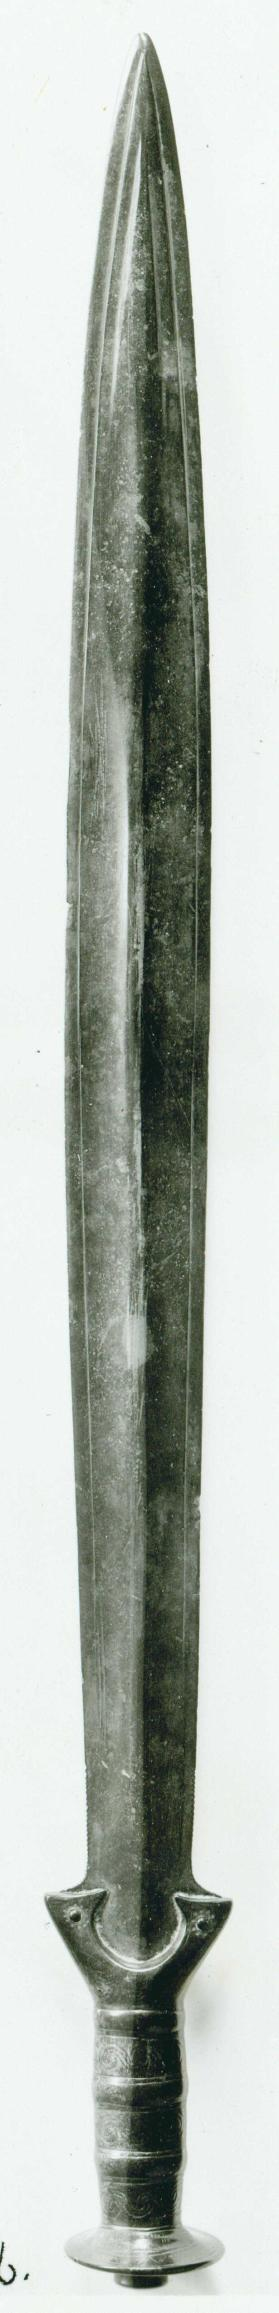 Early Hallstatt A type sword blade